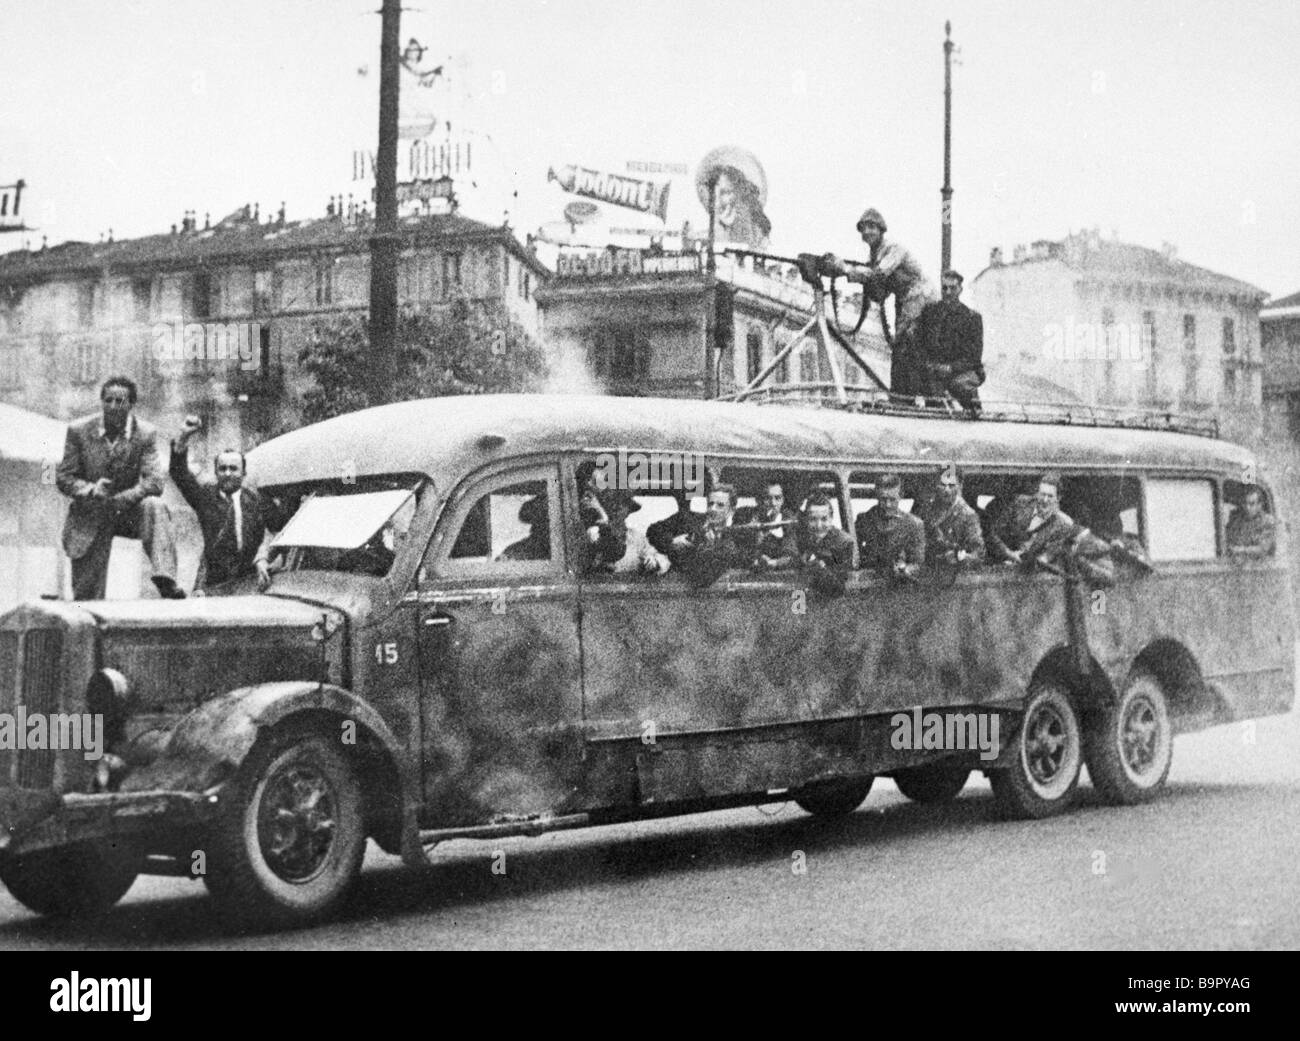 Armed group of the Resistance movement in a military bus on a Milan street during WWII Stock Photo